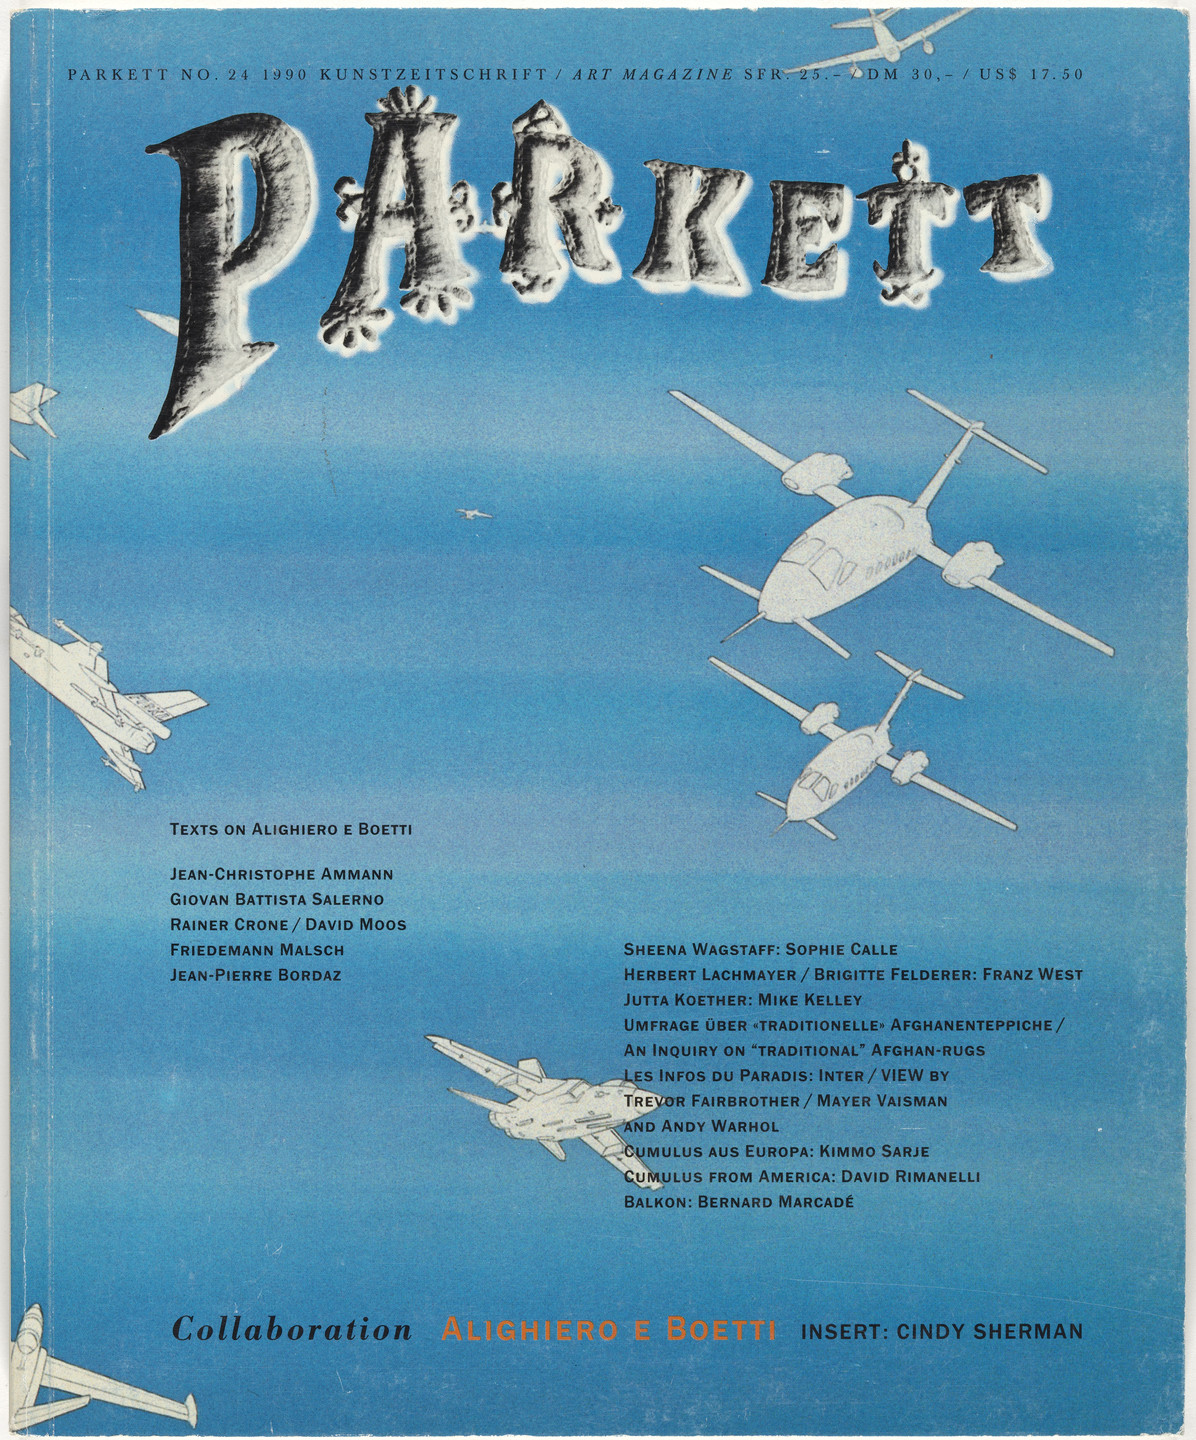 Alighiero Boetti, Cindy Sherman, André Thomkins, Various Artists. Parkett no. 24. 1990